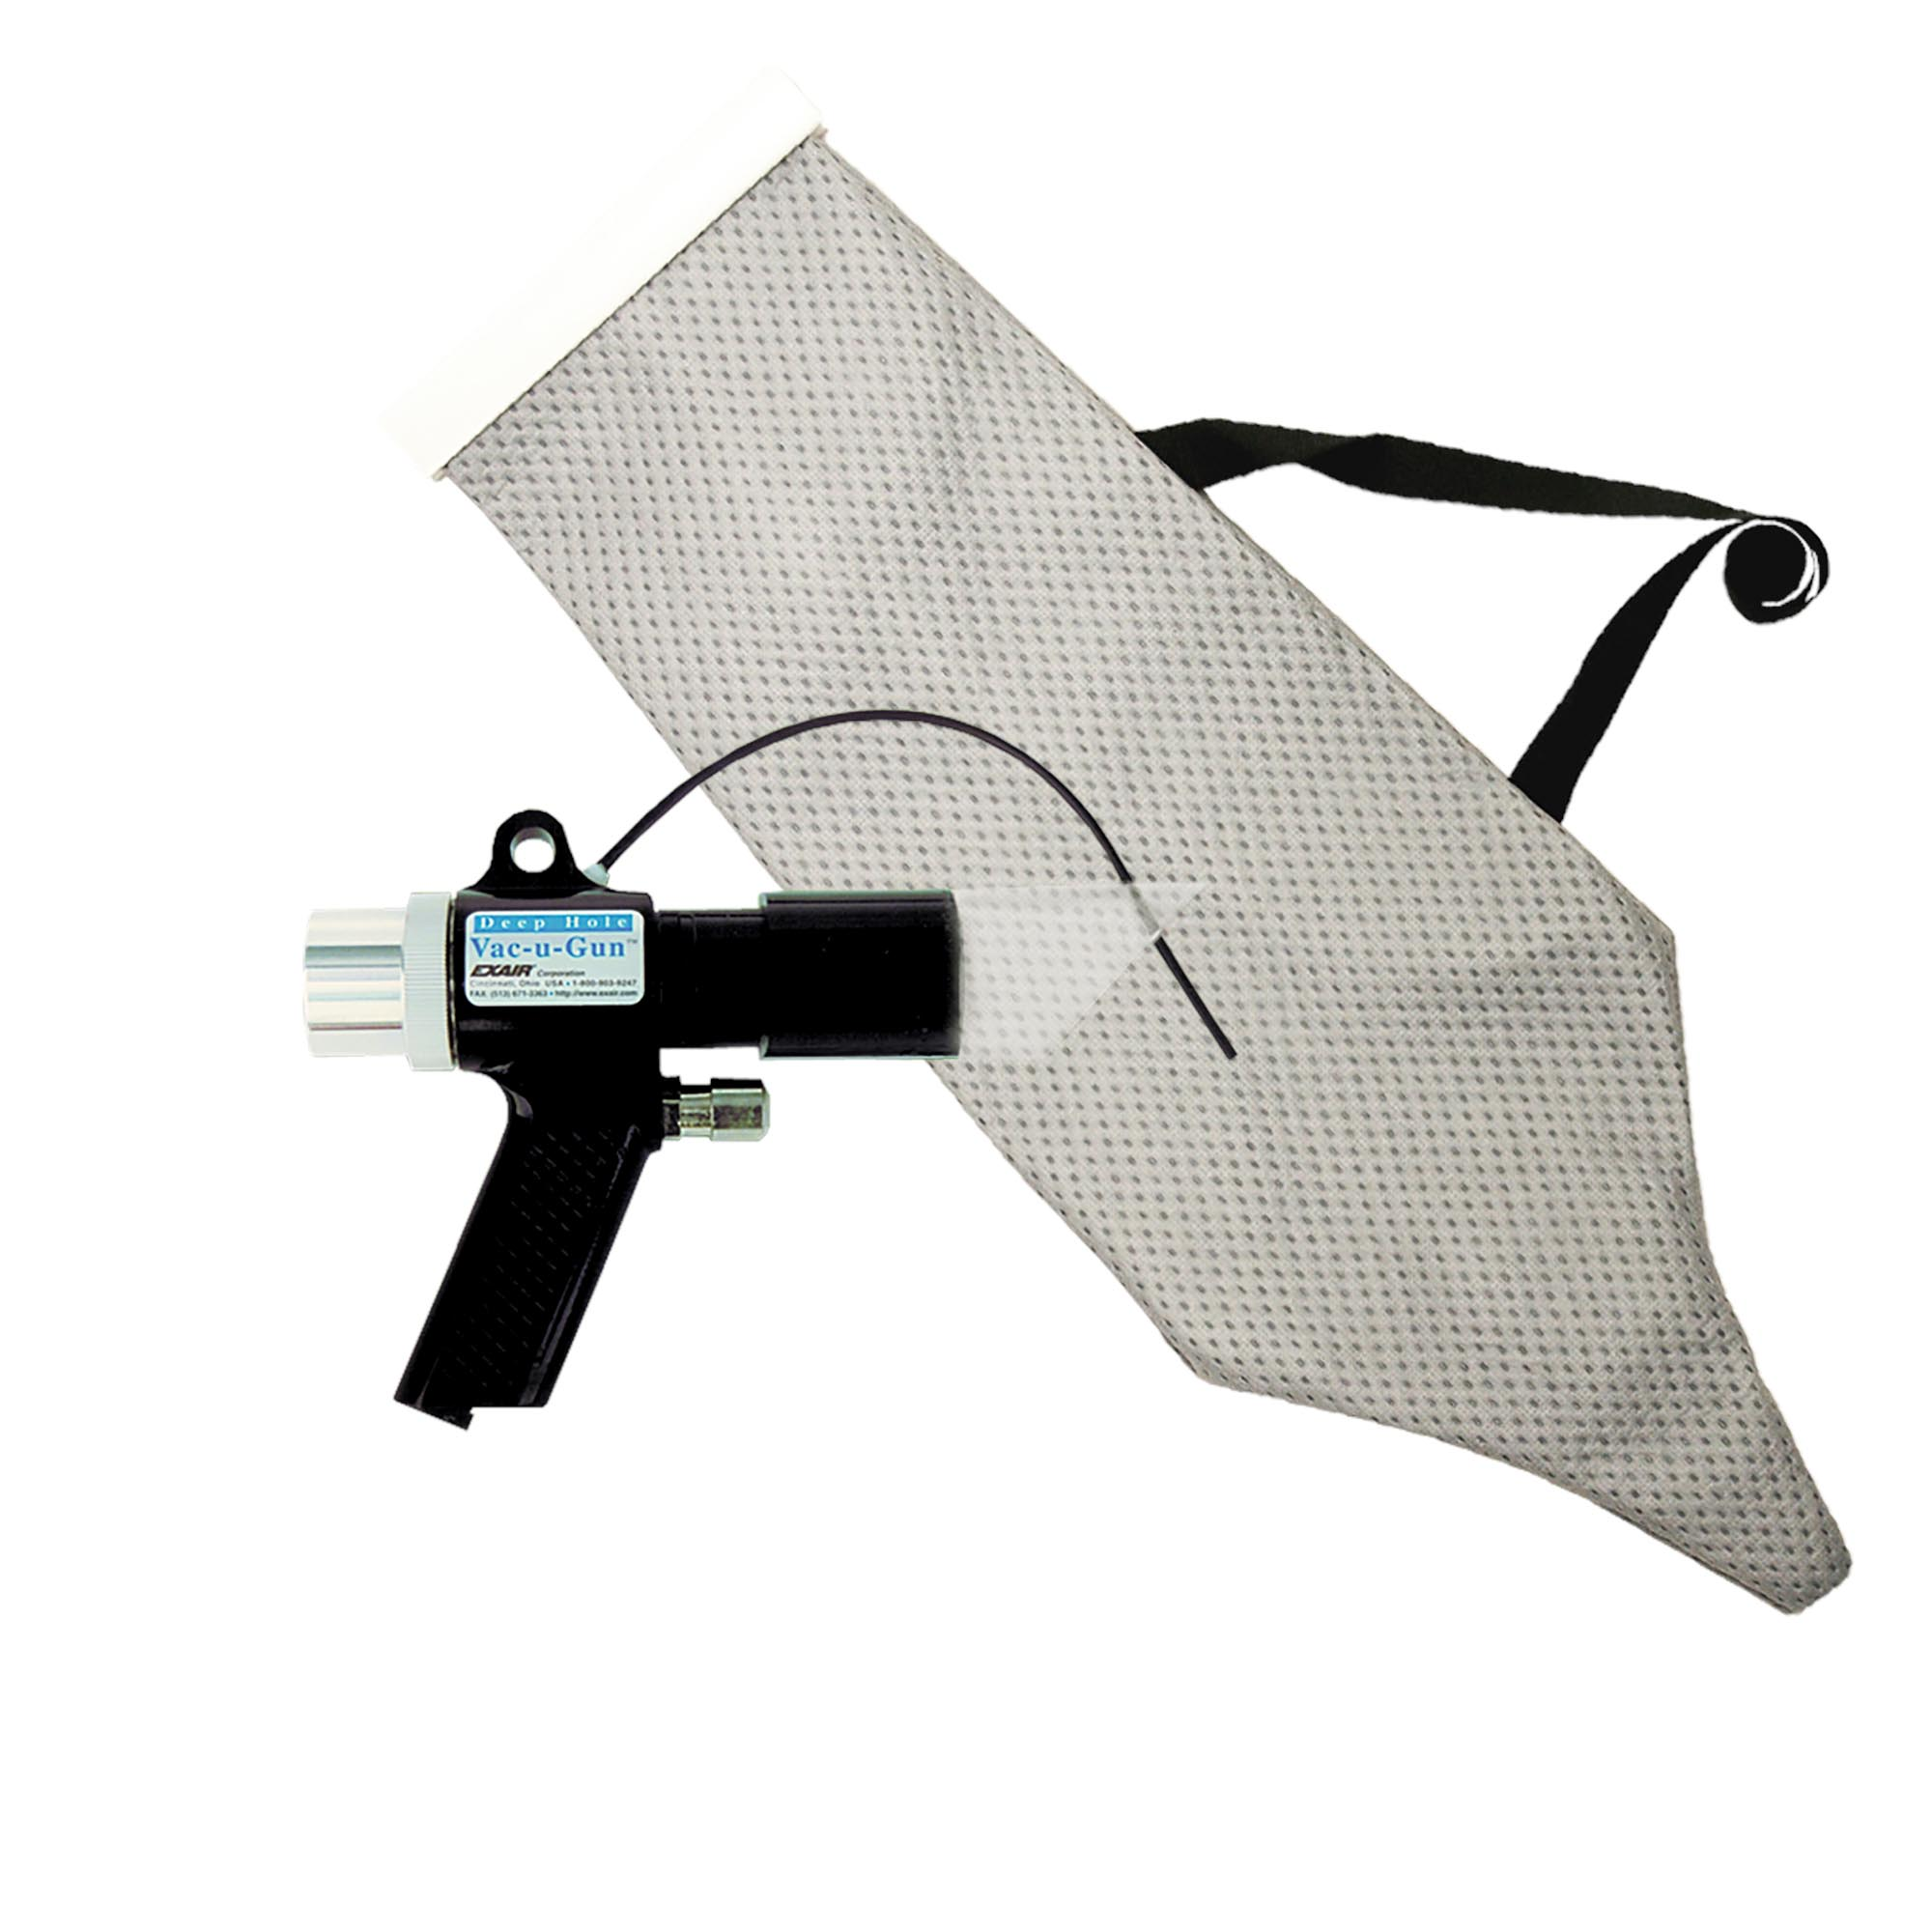 Model 6194 Vac-u-Gun with bag includes the reusable vacuum bag.